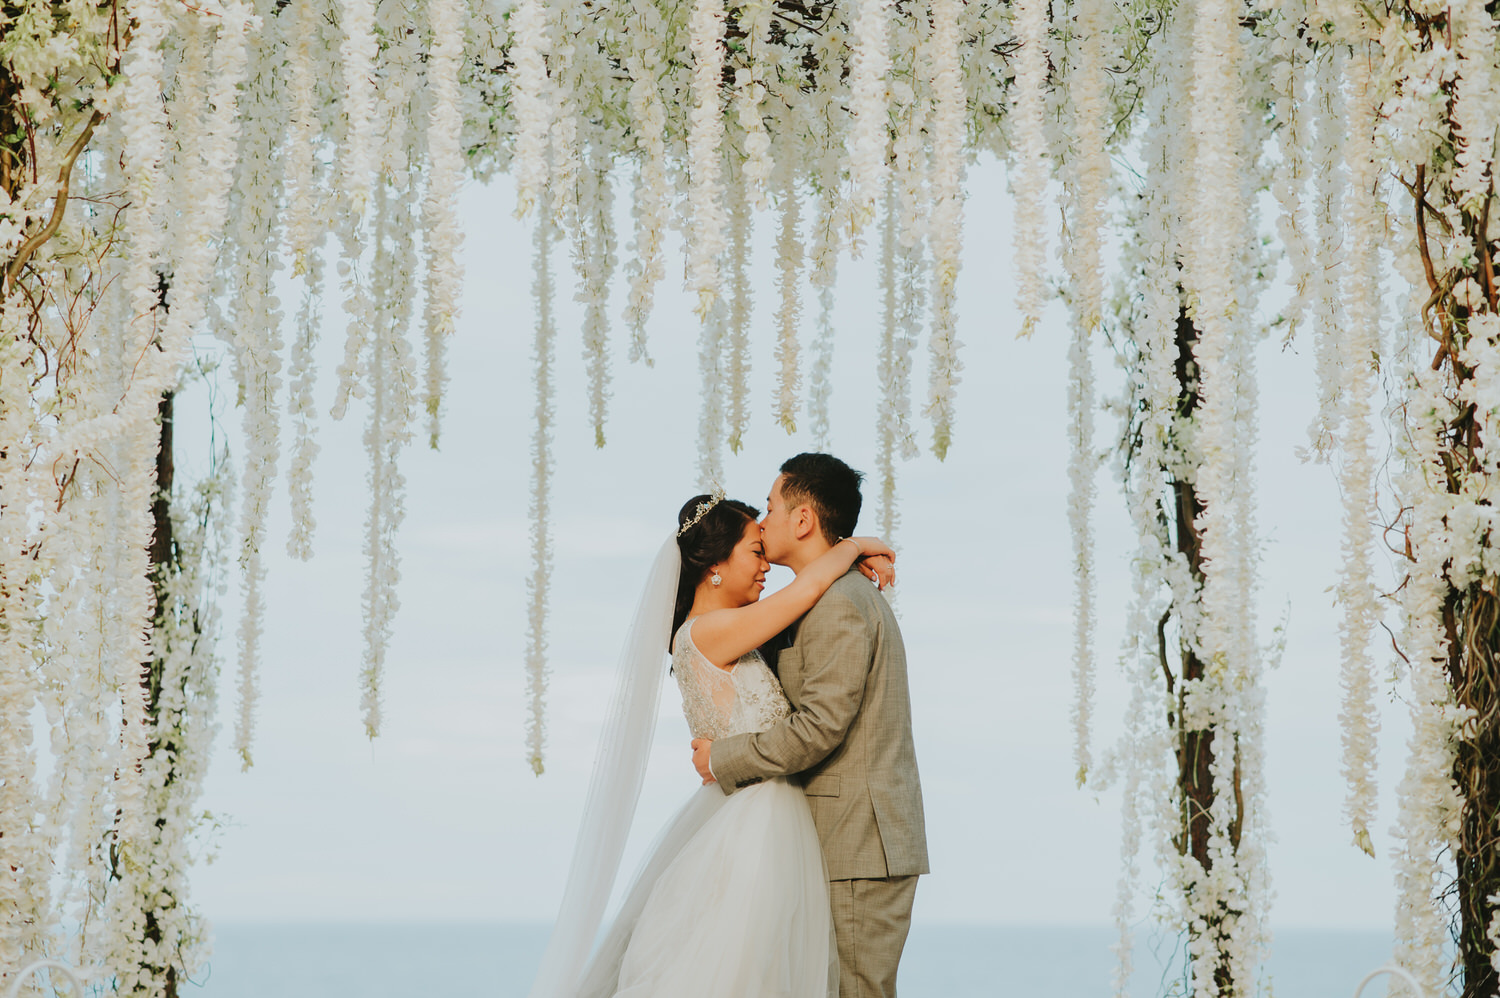 phuket wedding-diktatphotography-alex&andy wedding-112